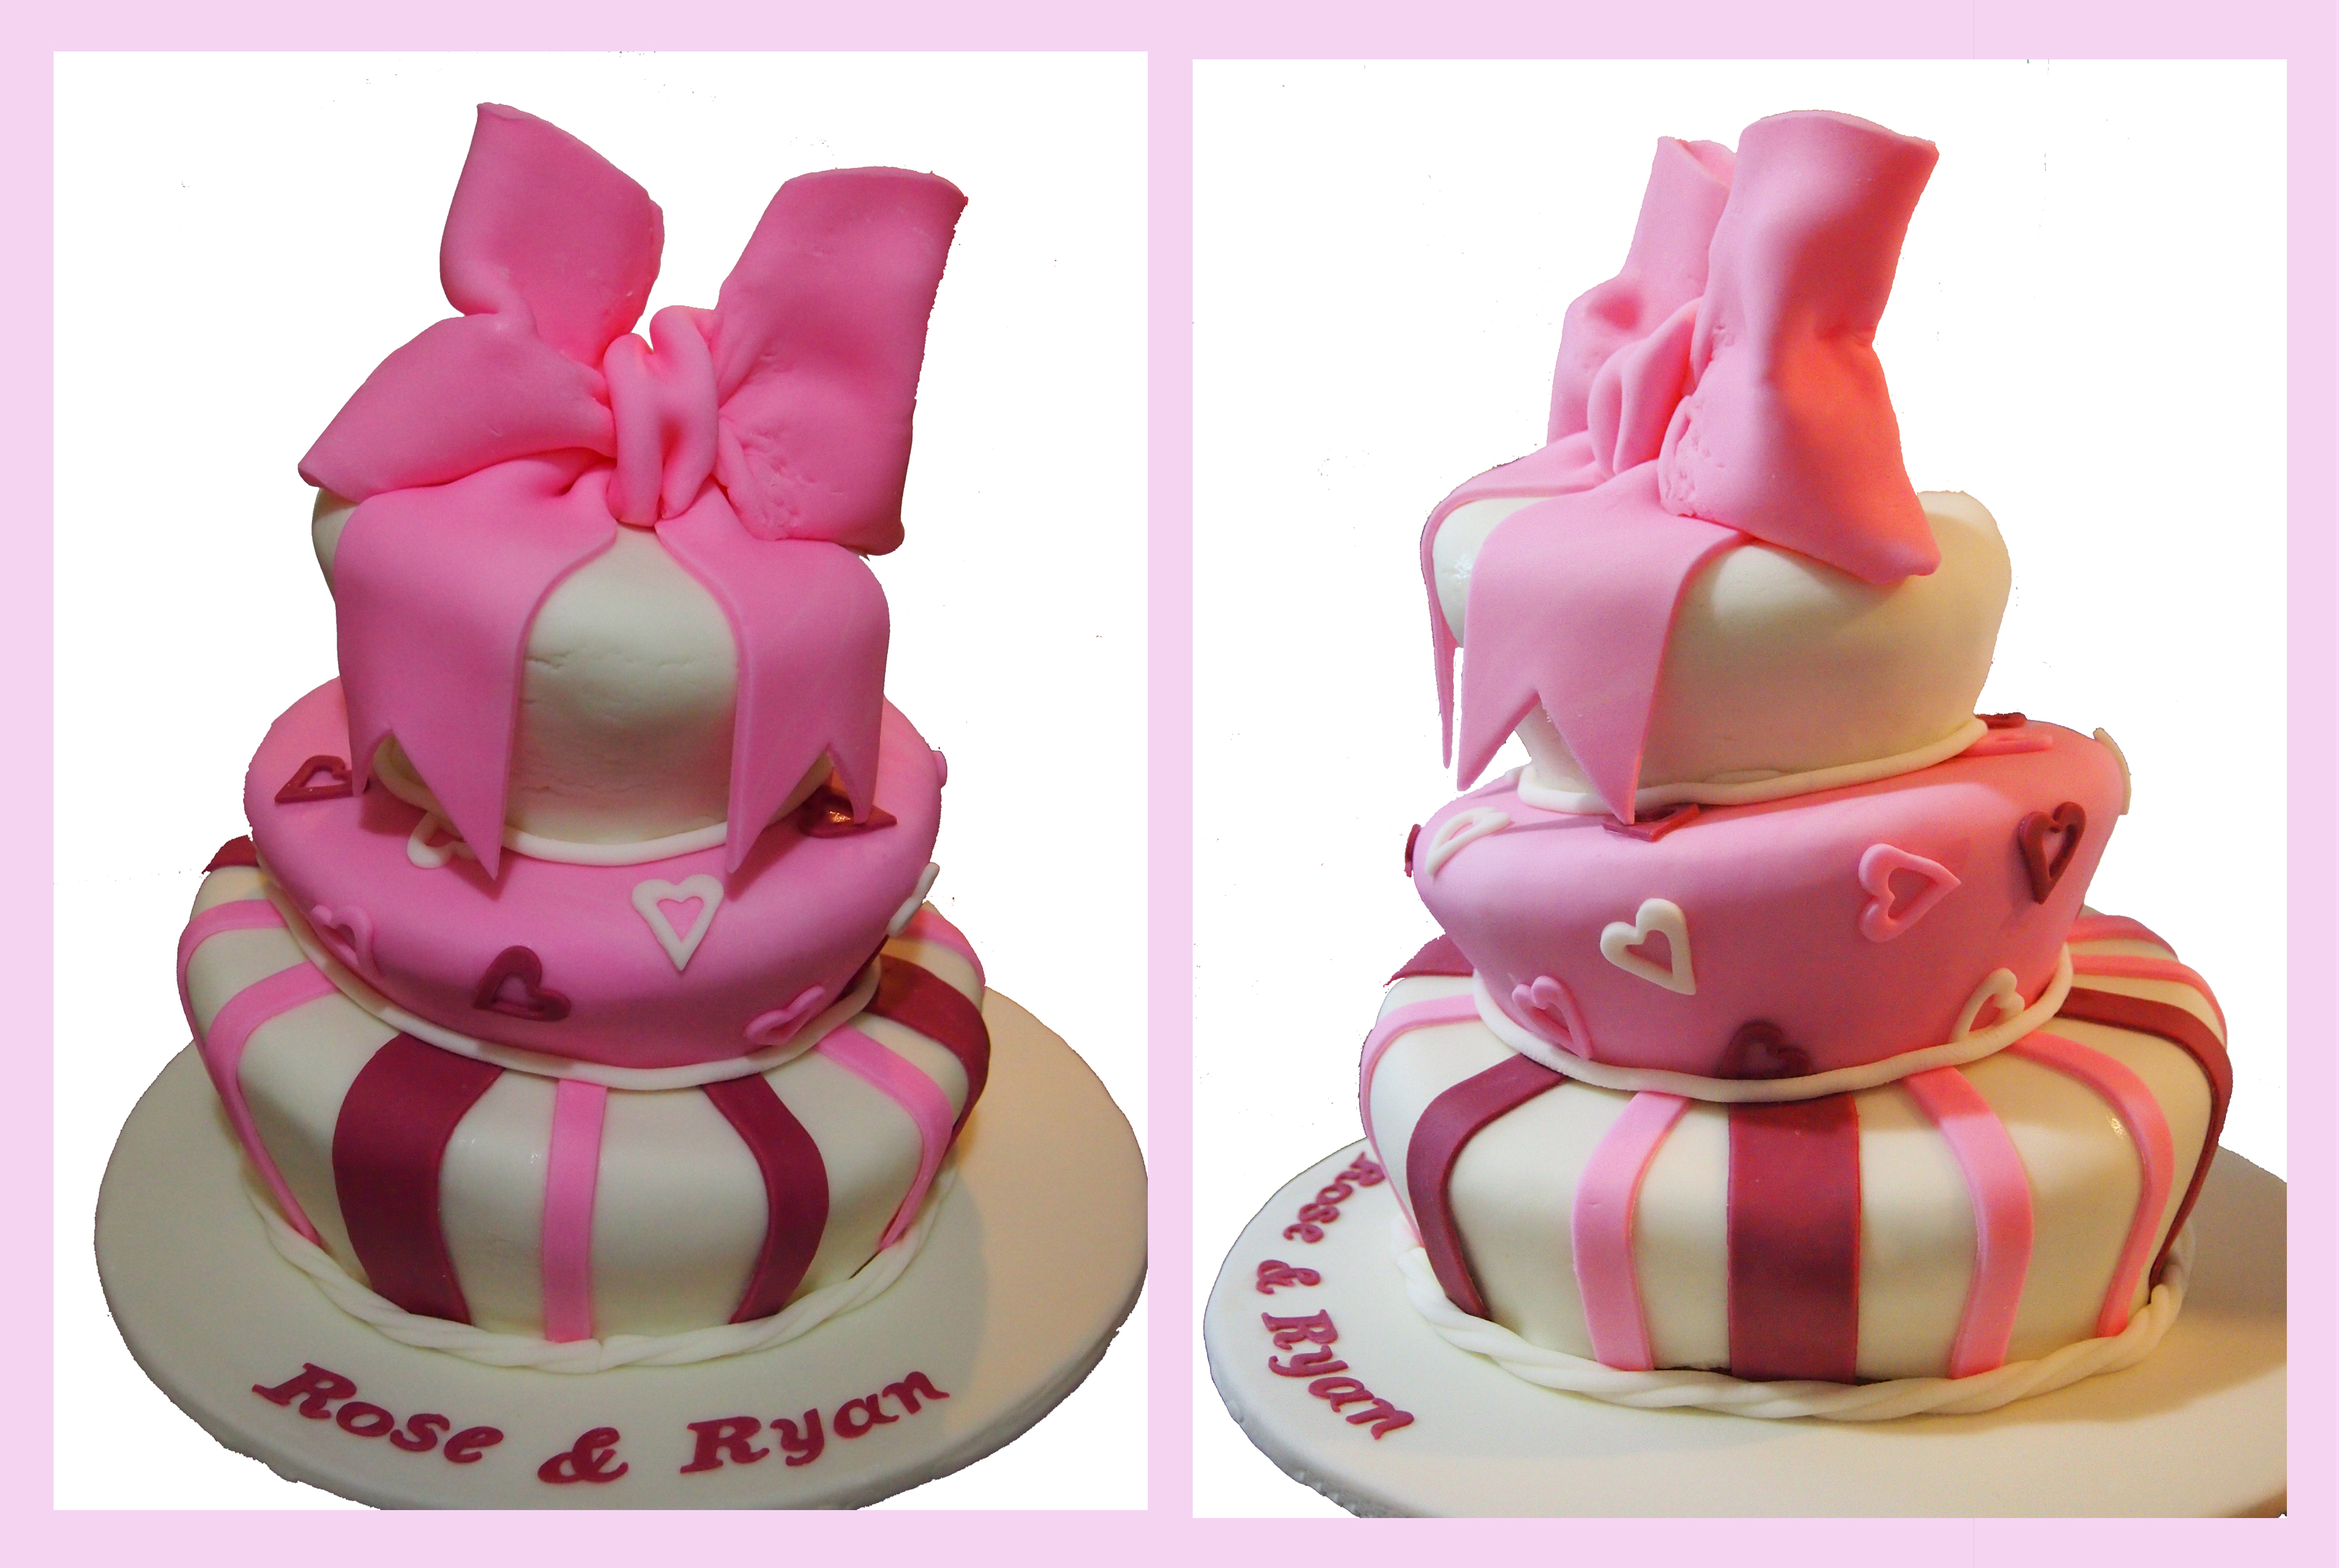 How To Cut A Topsy Turvy Cake To Serve